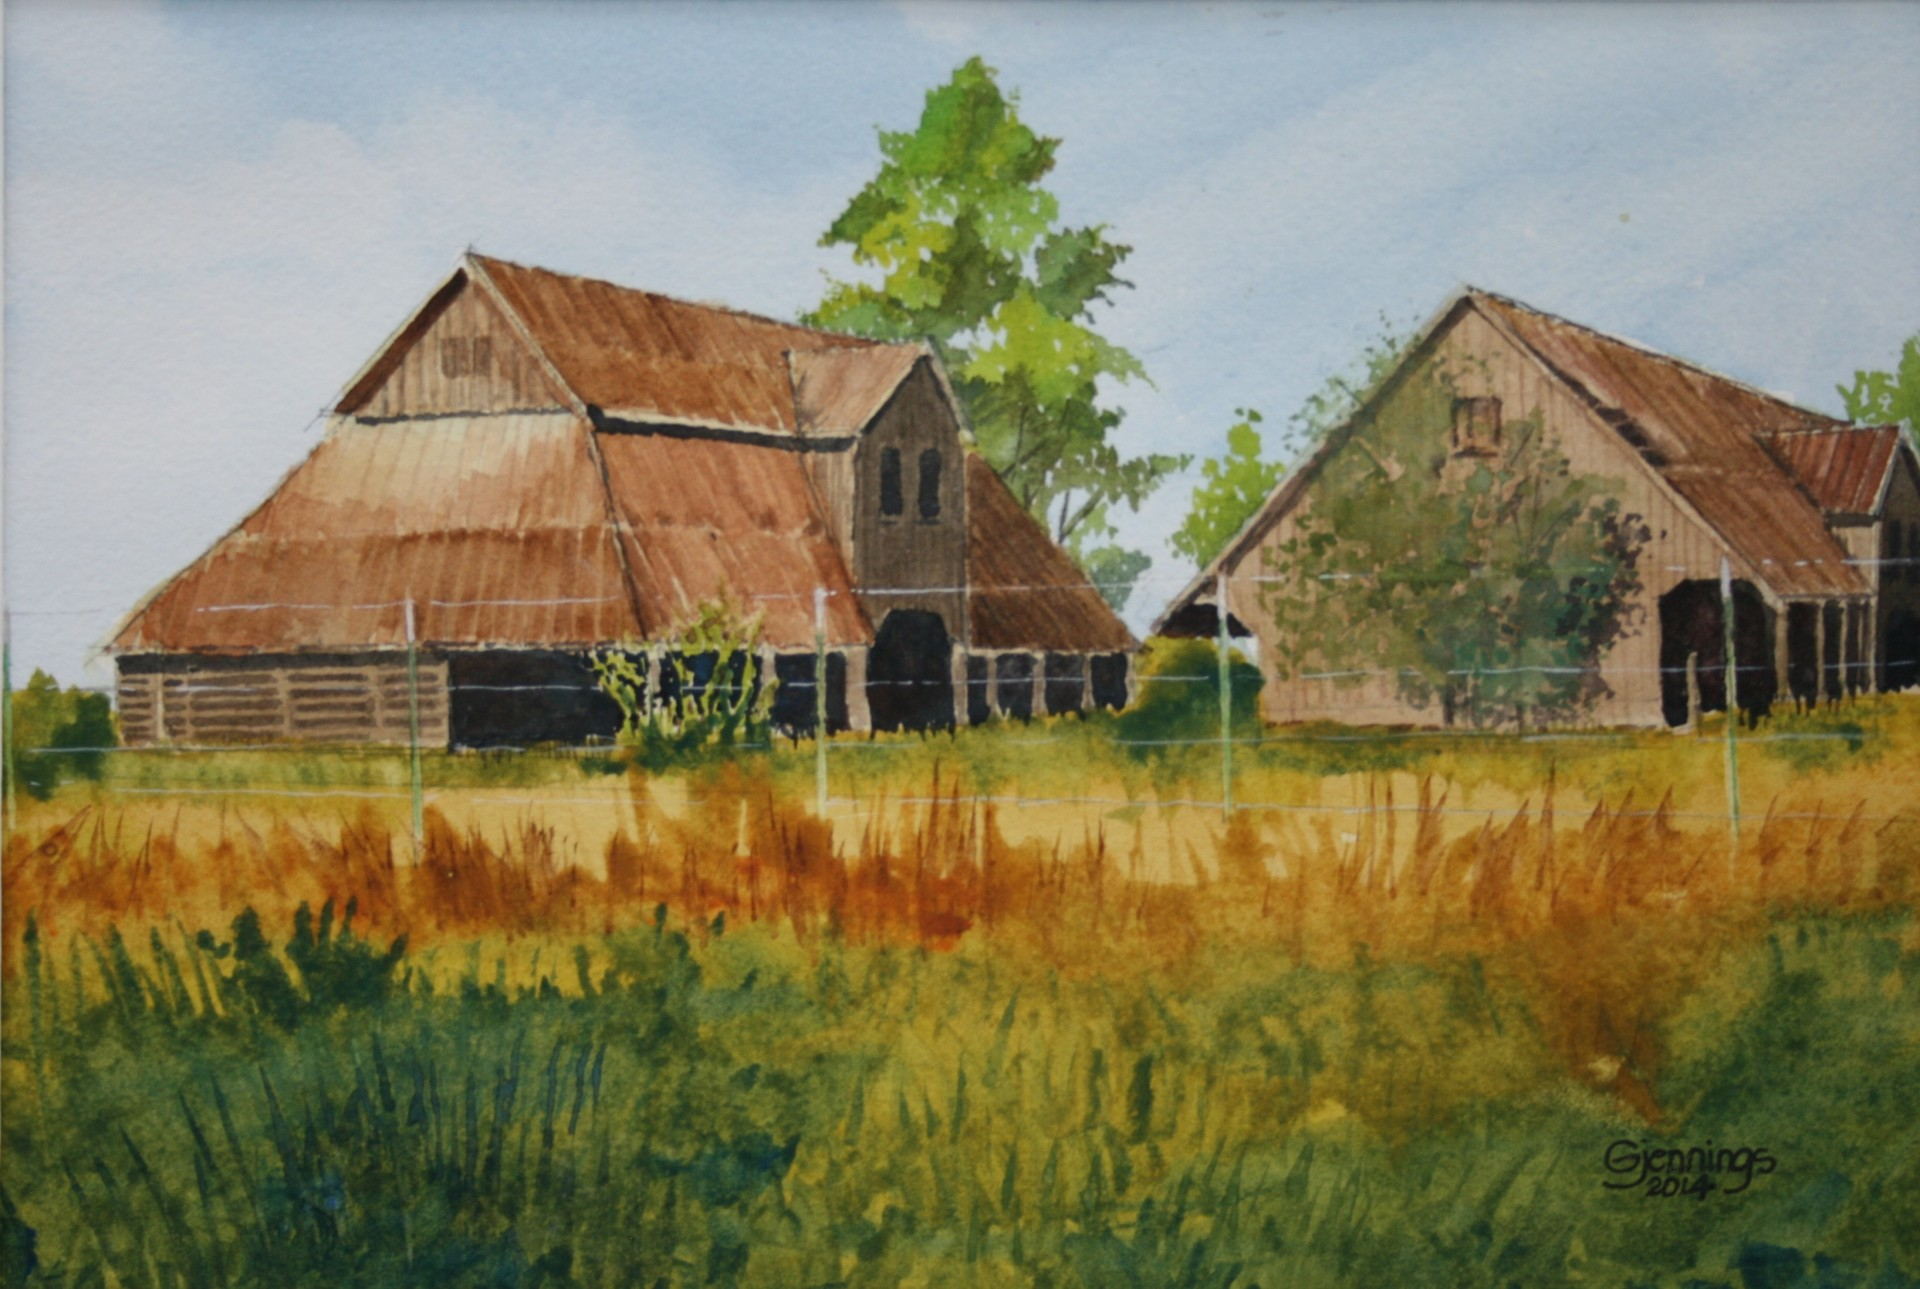 Two East Texas Barns